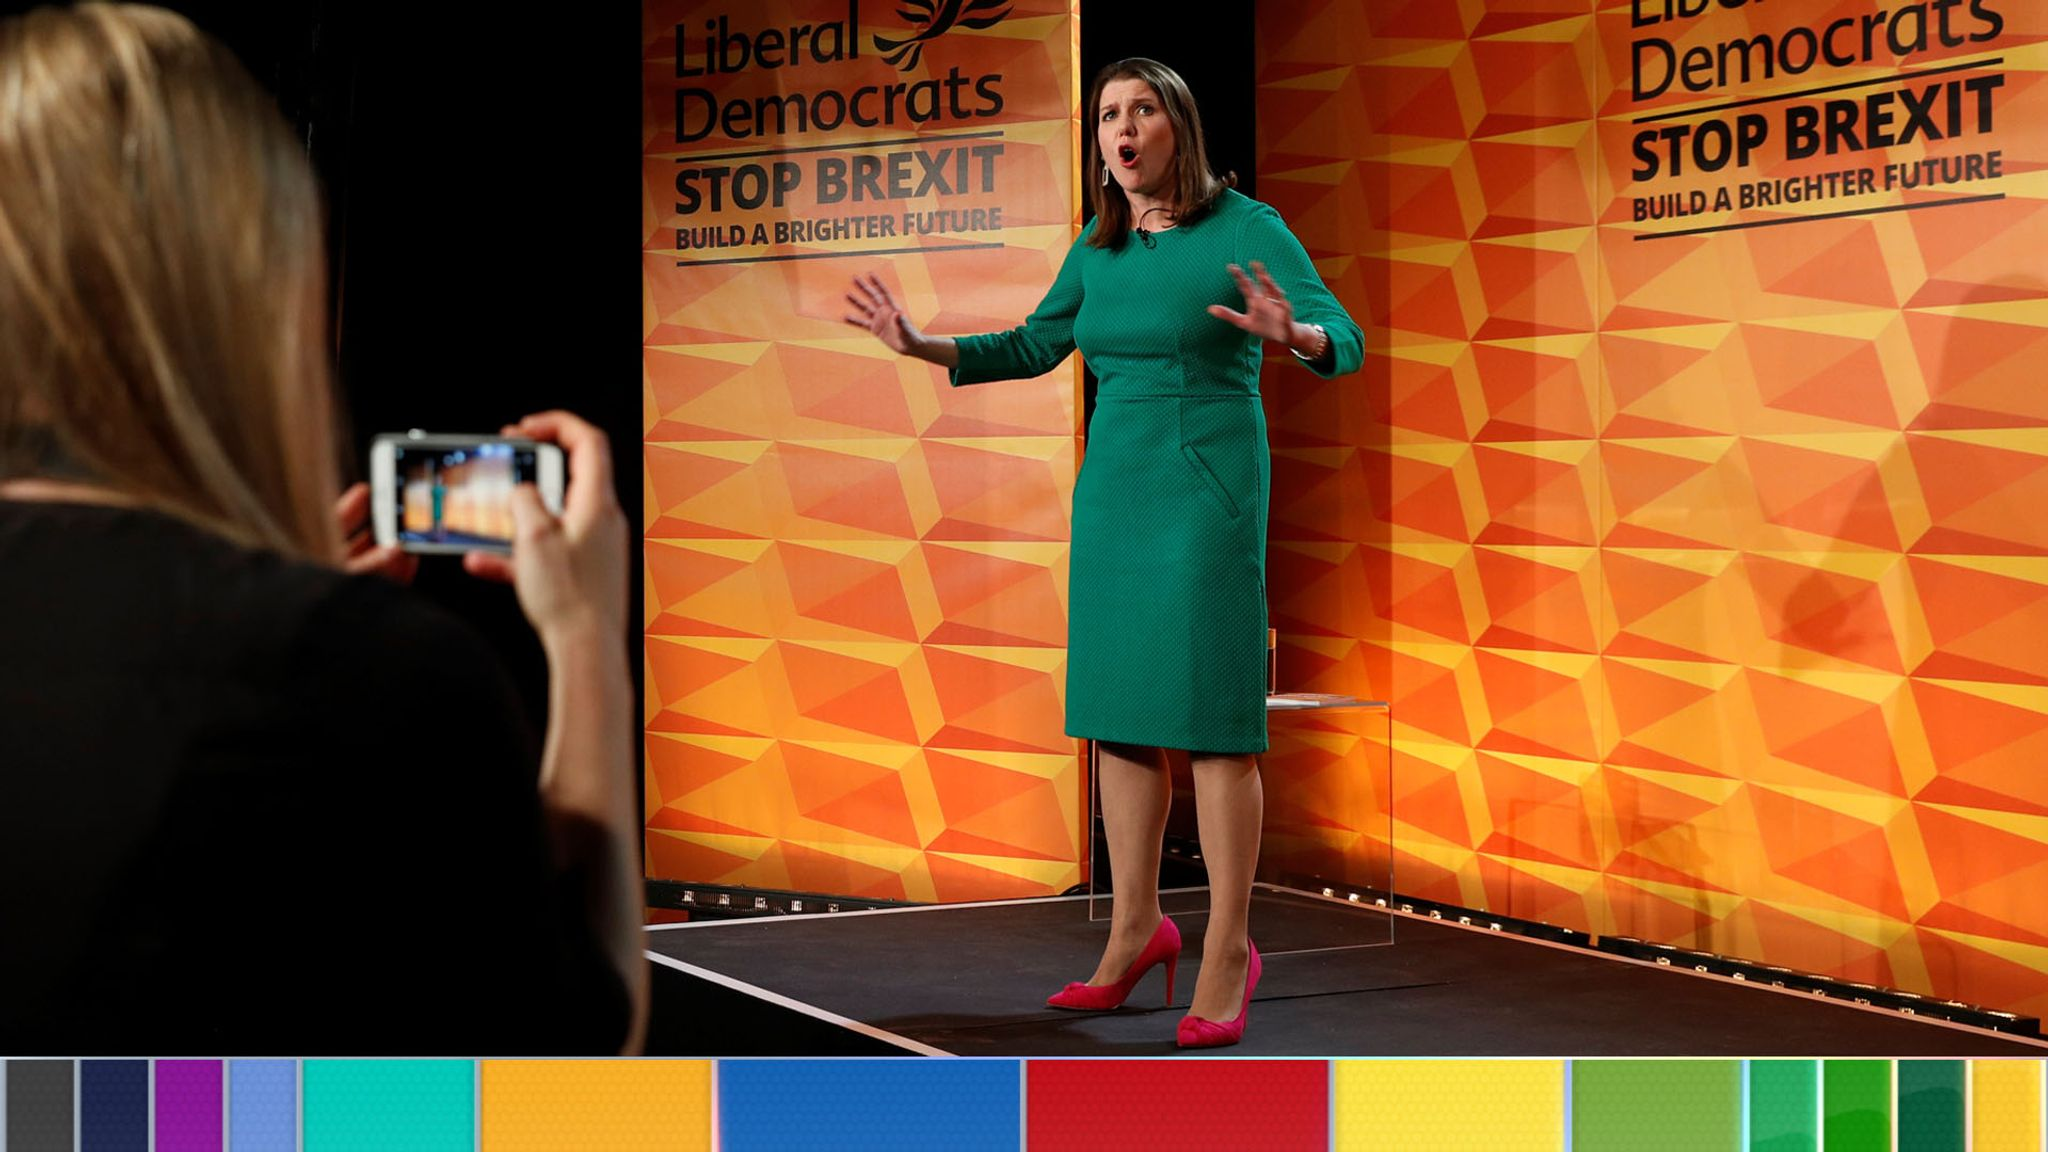 General election: Jo Swinson brands Boris Johnson serial liar at Liberal Democrat manifesto launch